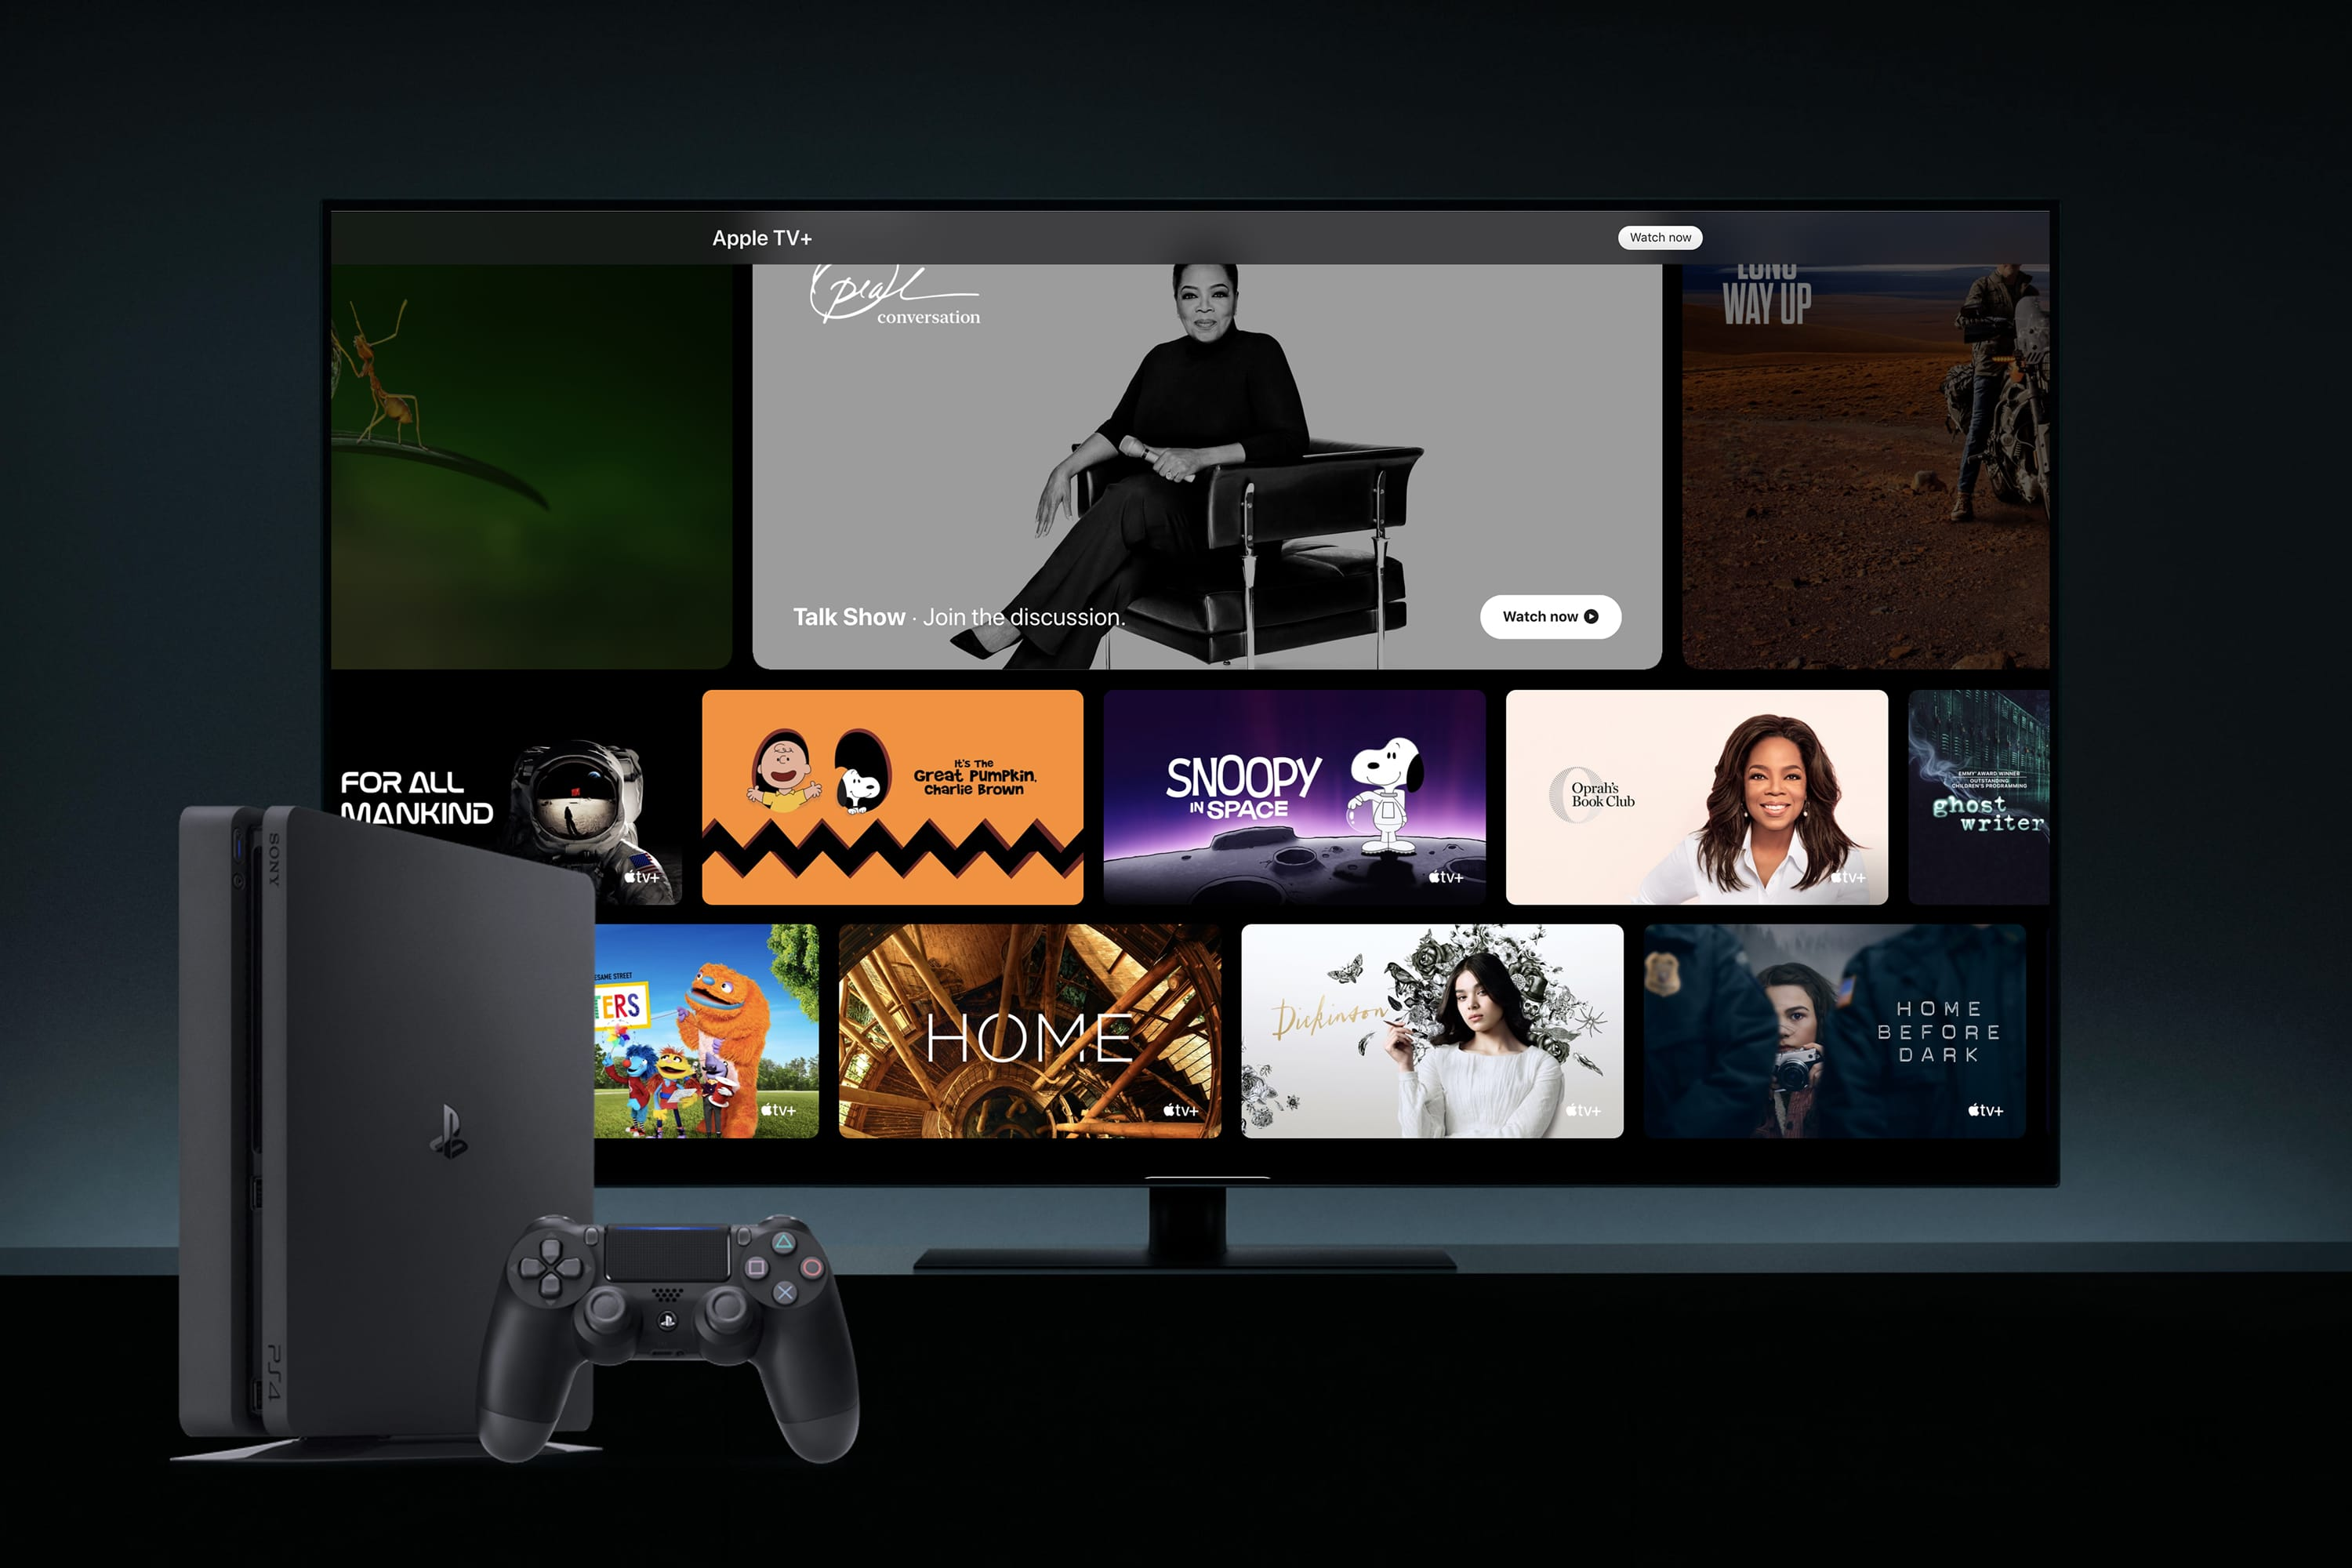 apple-tv-now-available-on-playstation-devices-ps4-ps5-20201112-3